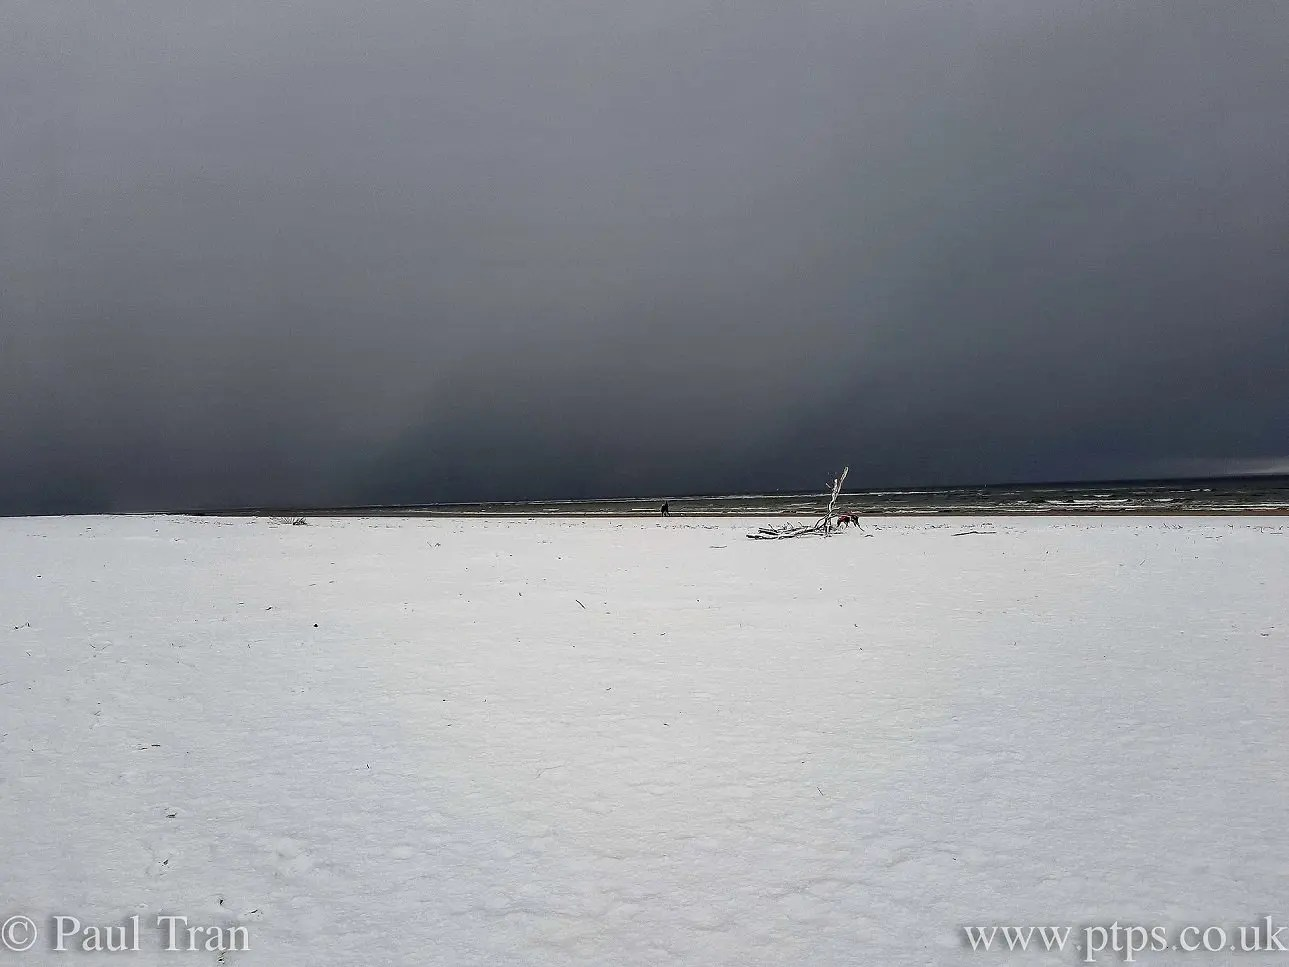 storm clouds over a snow-covered beach